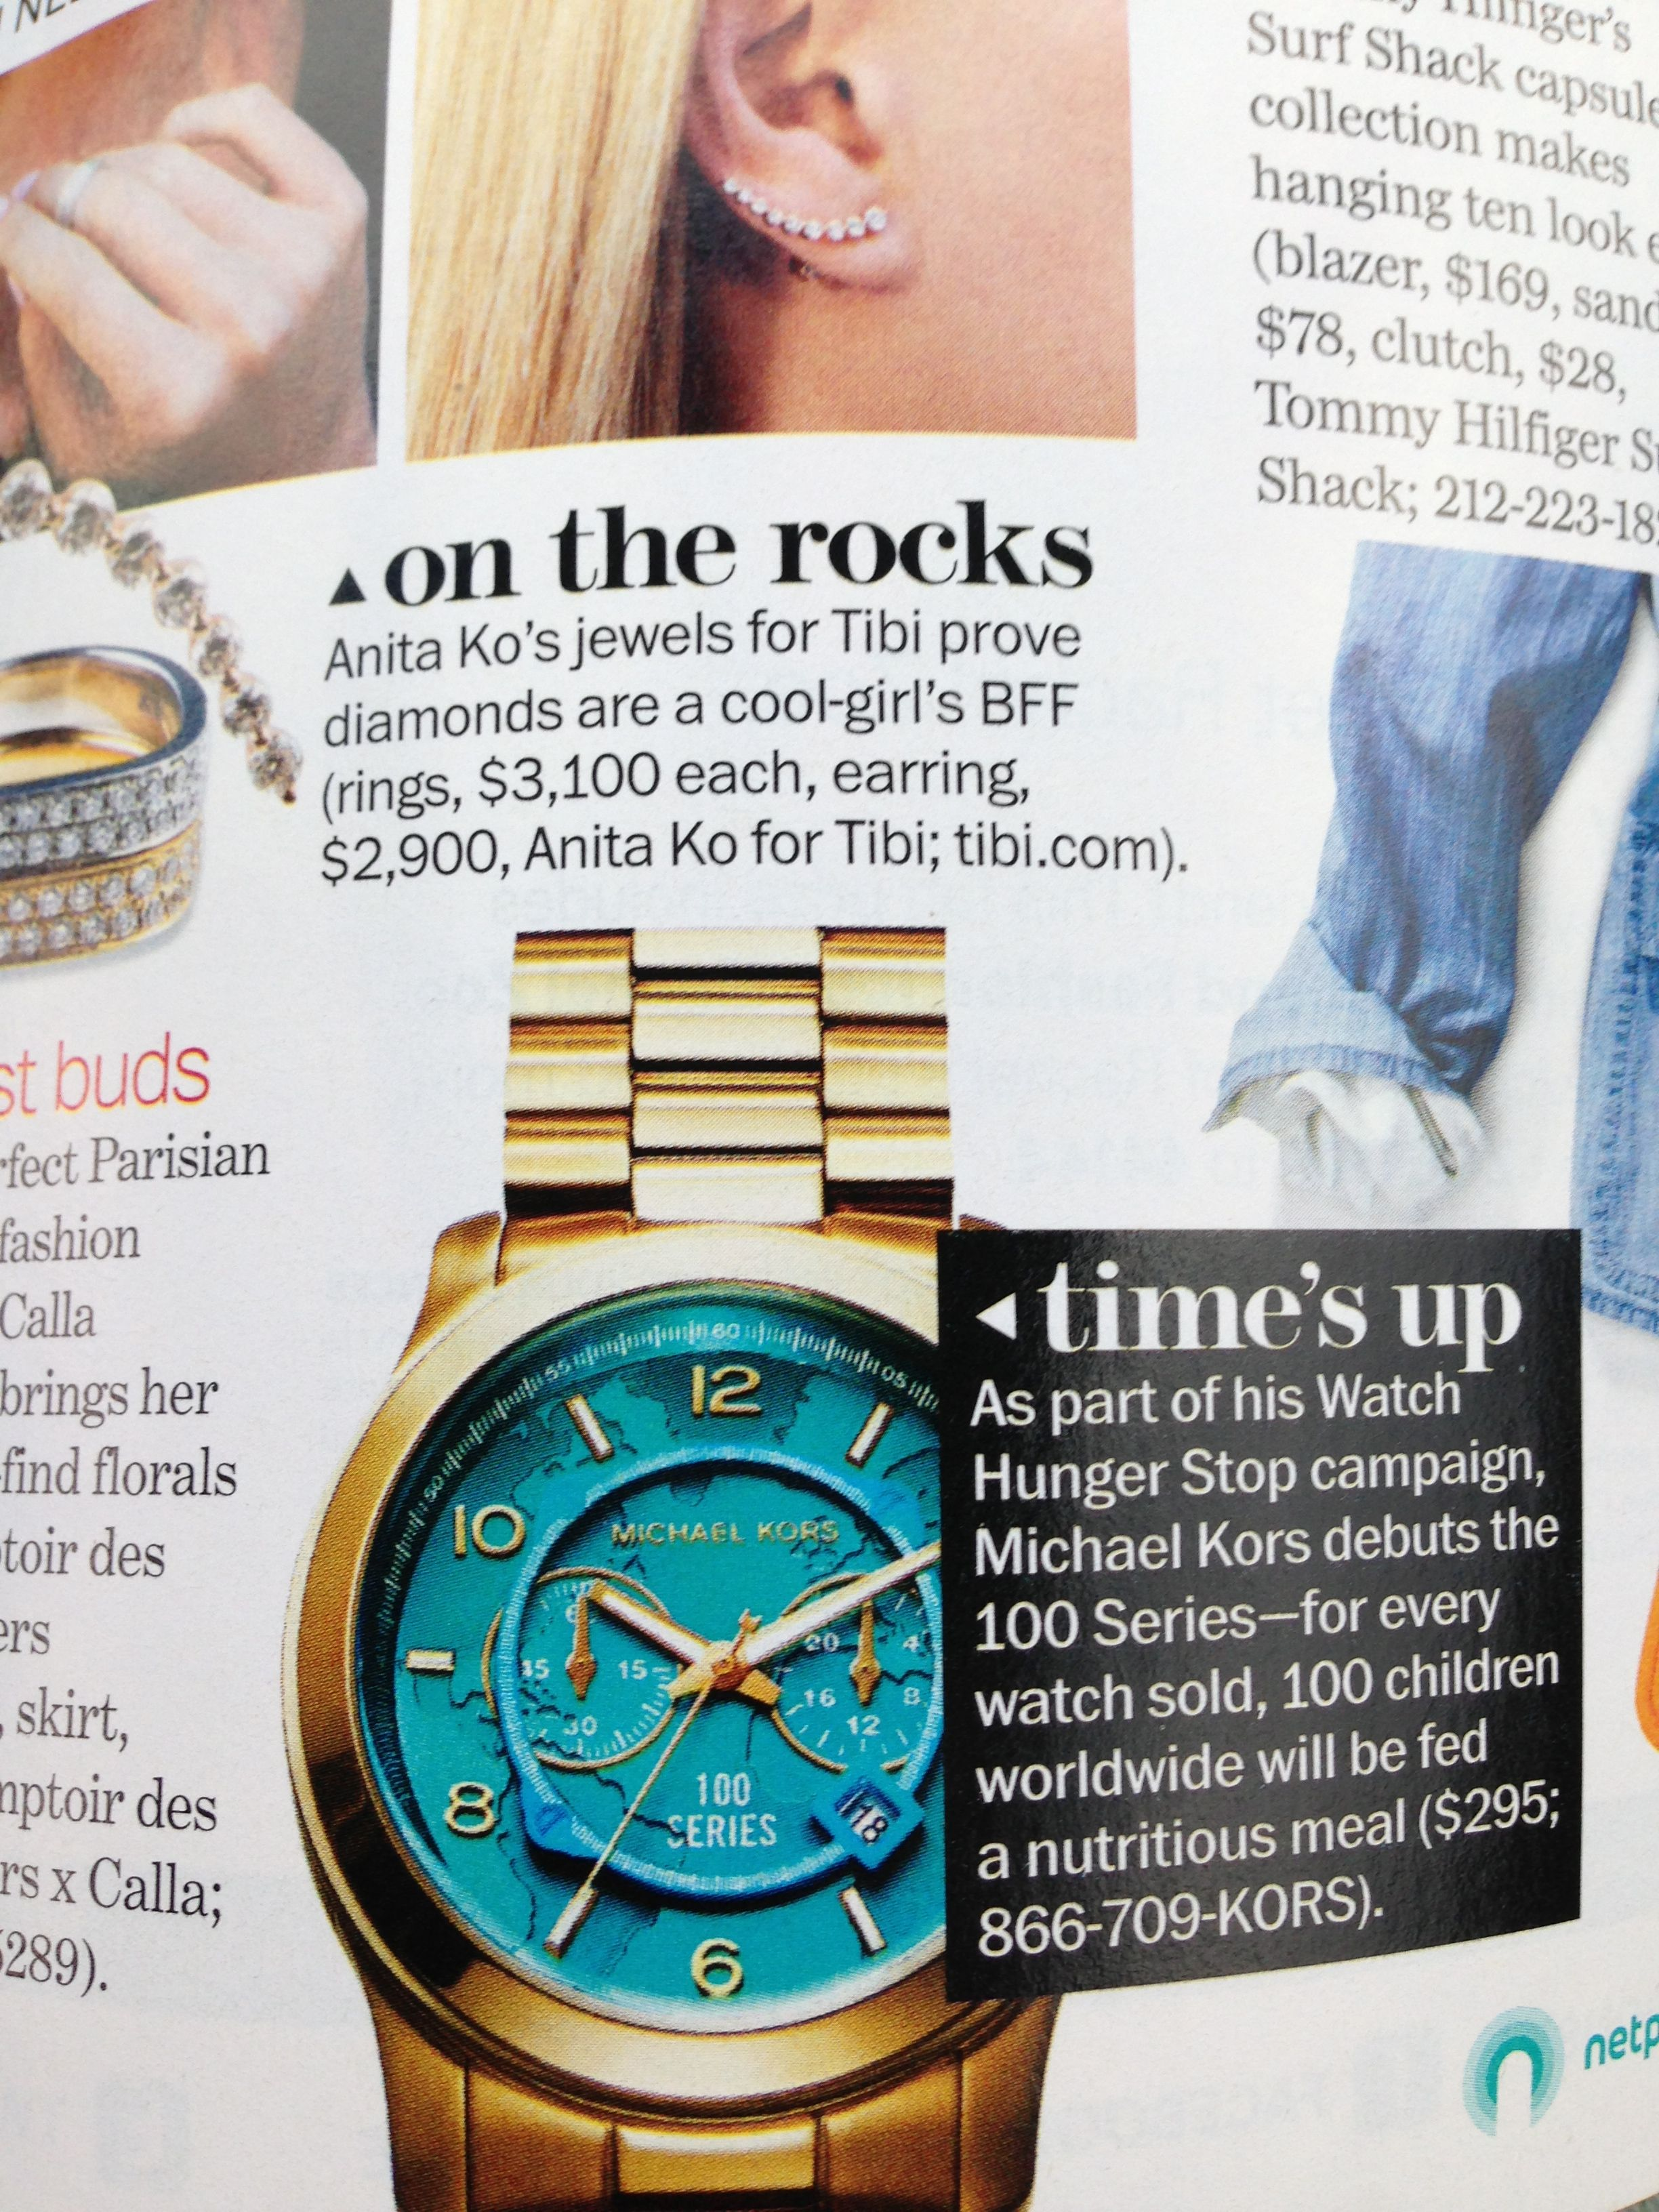 Michael Kors watch - 100 series